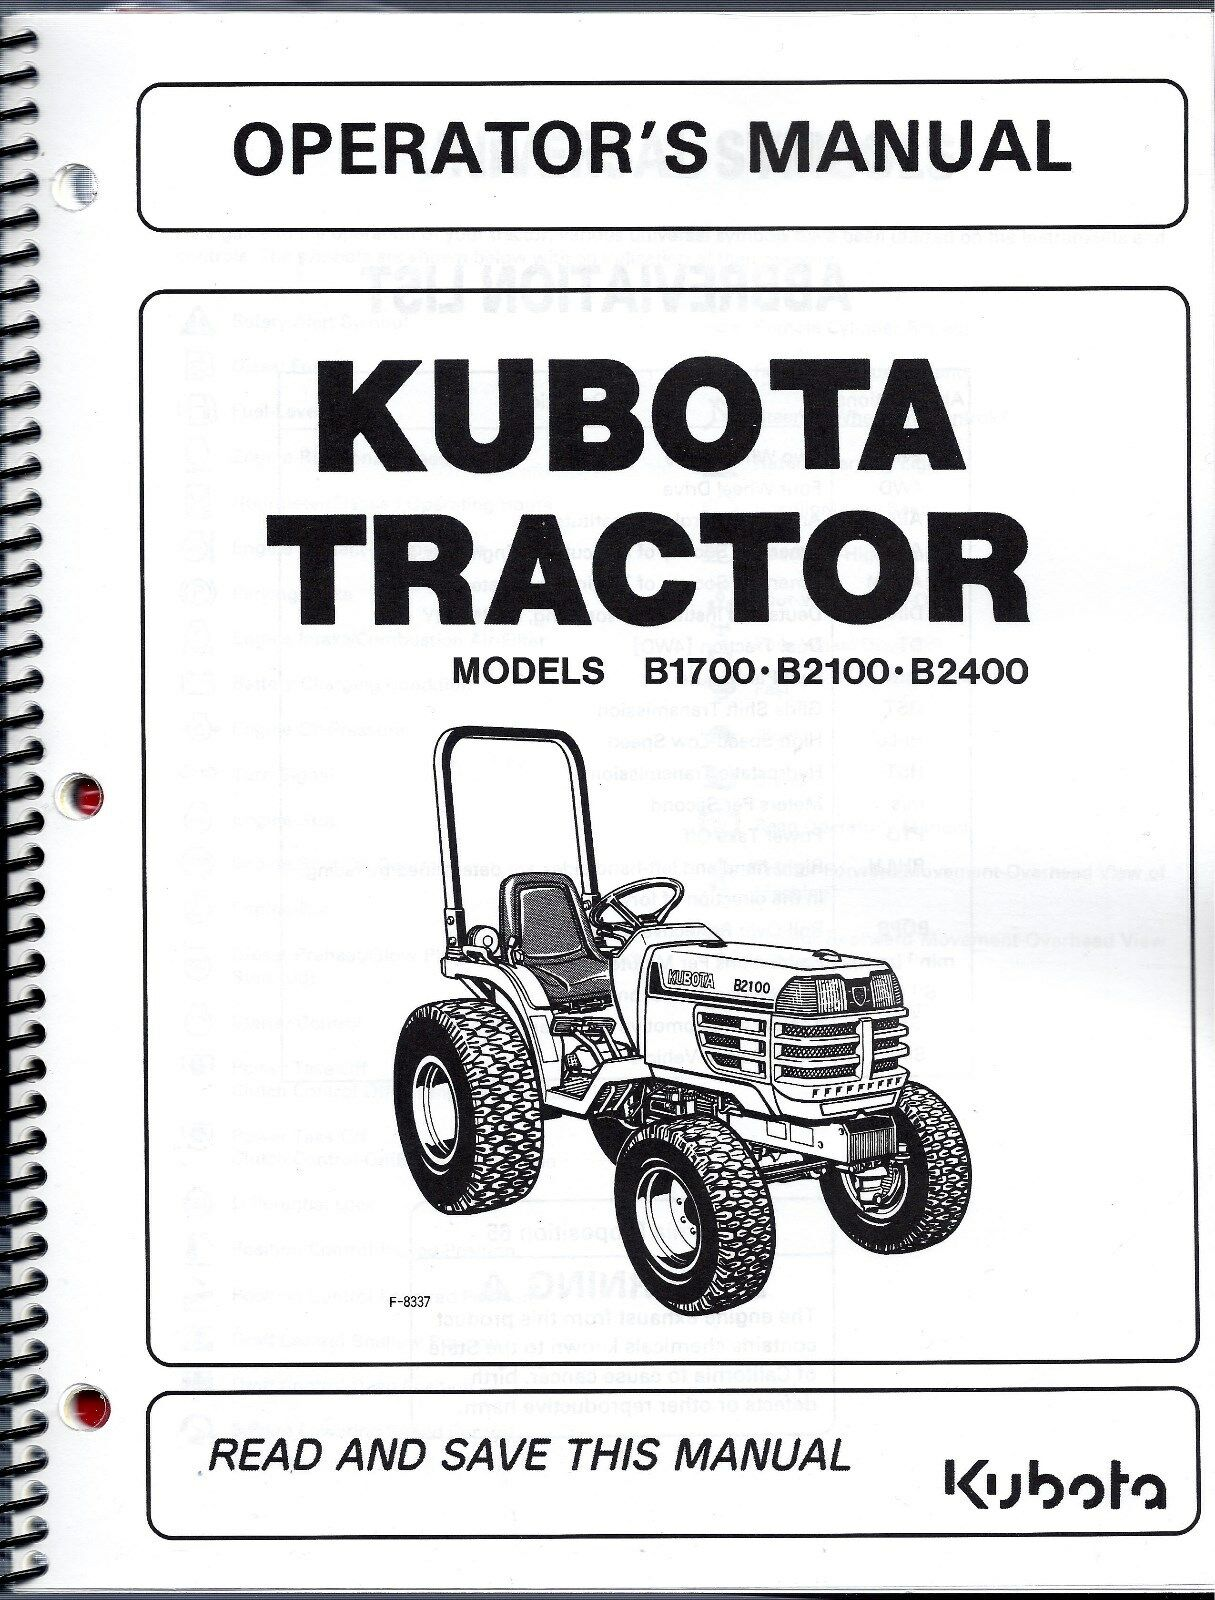 Kubota B1700 B2100 B2400 Tractor Operator Manual / RC60-24B MOWER 2 MANUAL  1 of 2Only 1 available ...